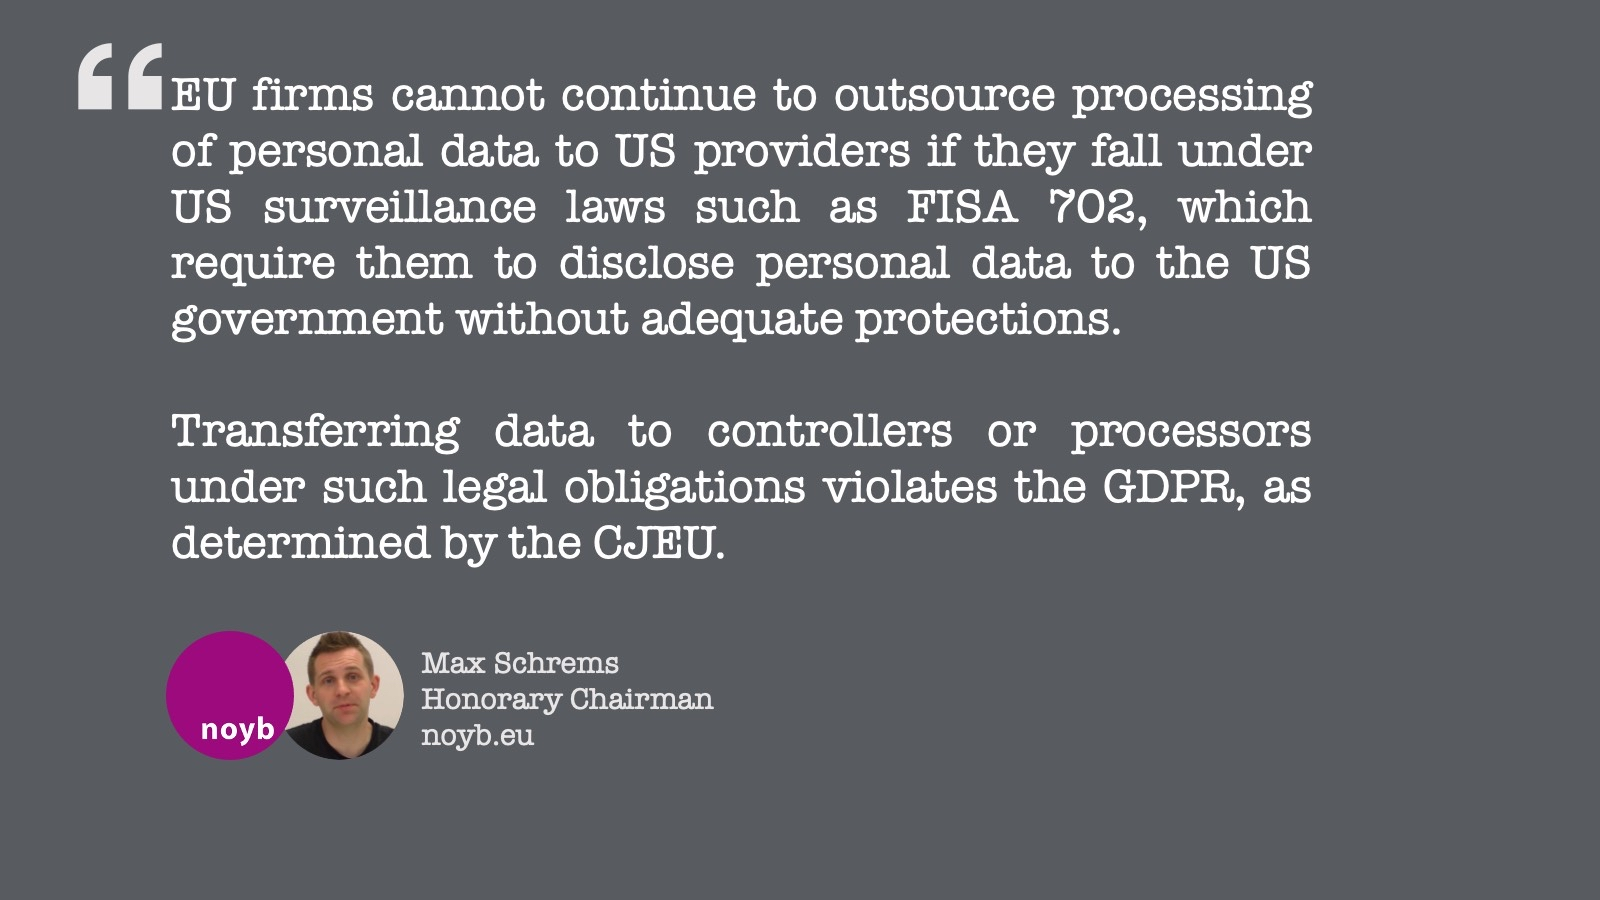 Quote by Max Schrems, honarary chairman of Noyb.eu